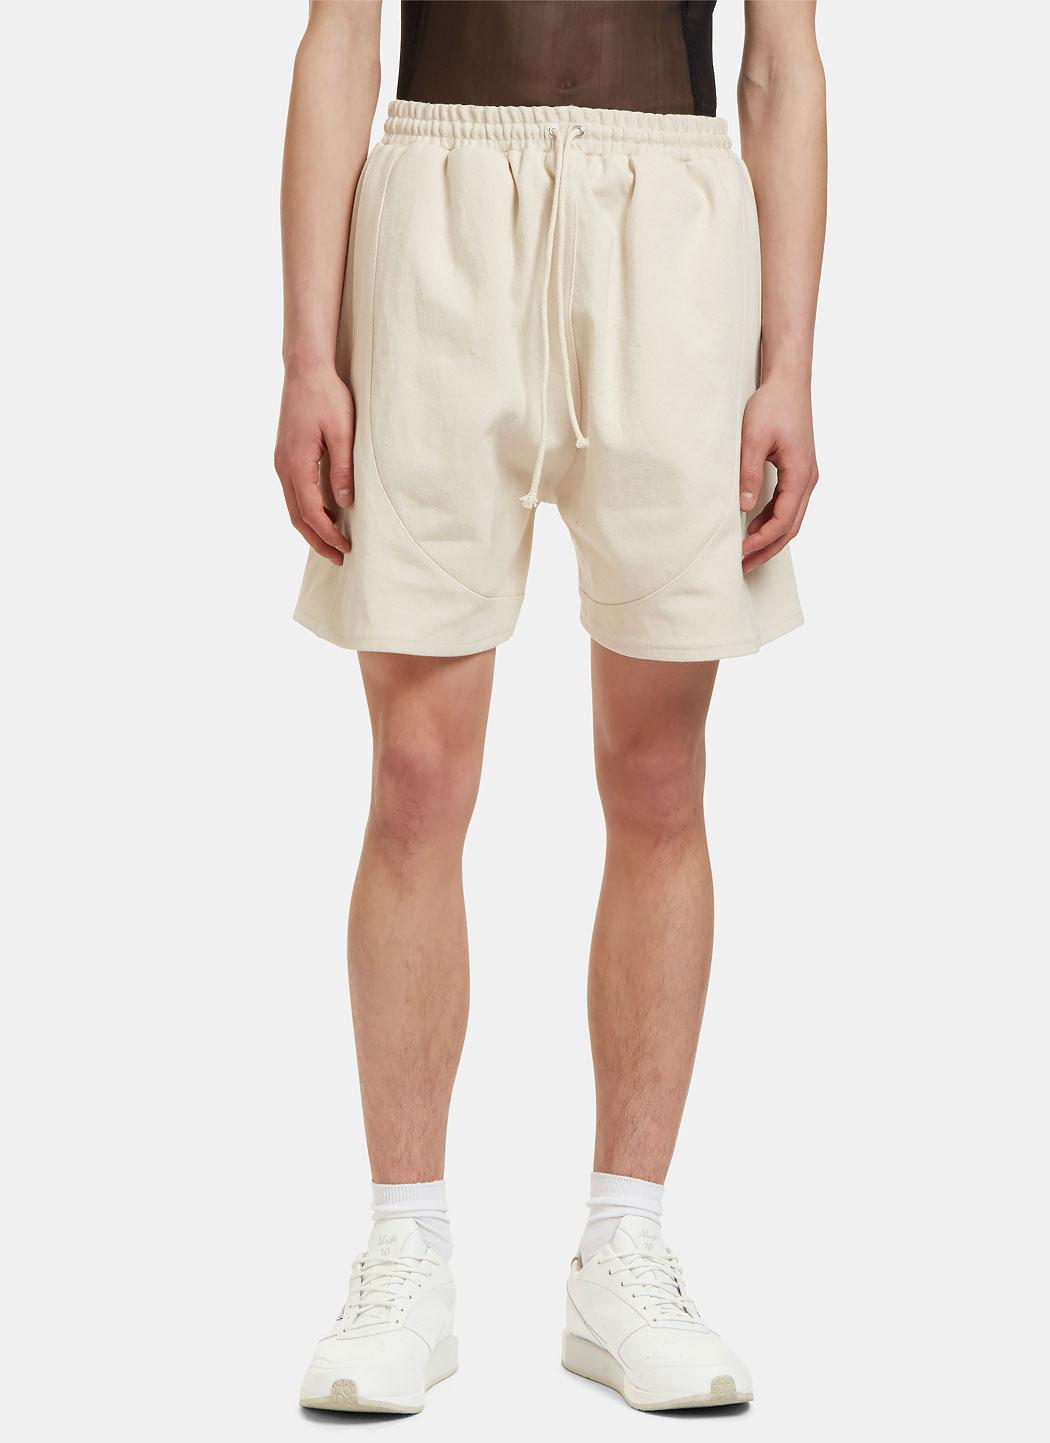 Camiel Fortgens Men 39 S Football Shorts In Off White In